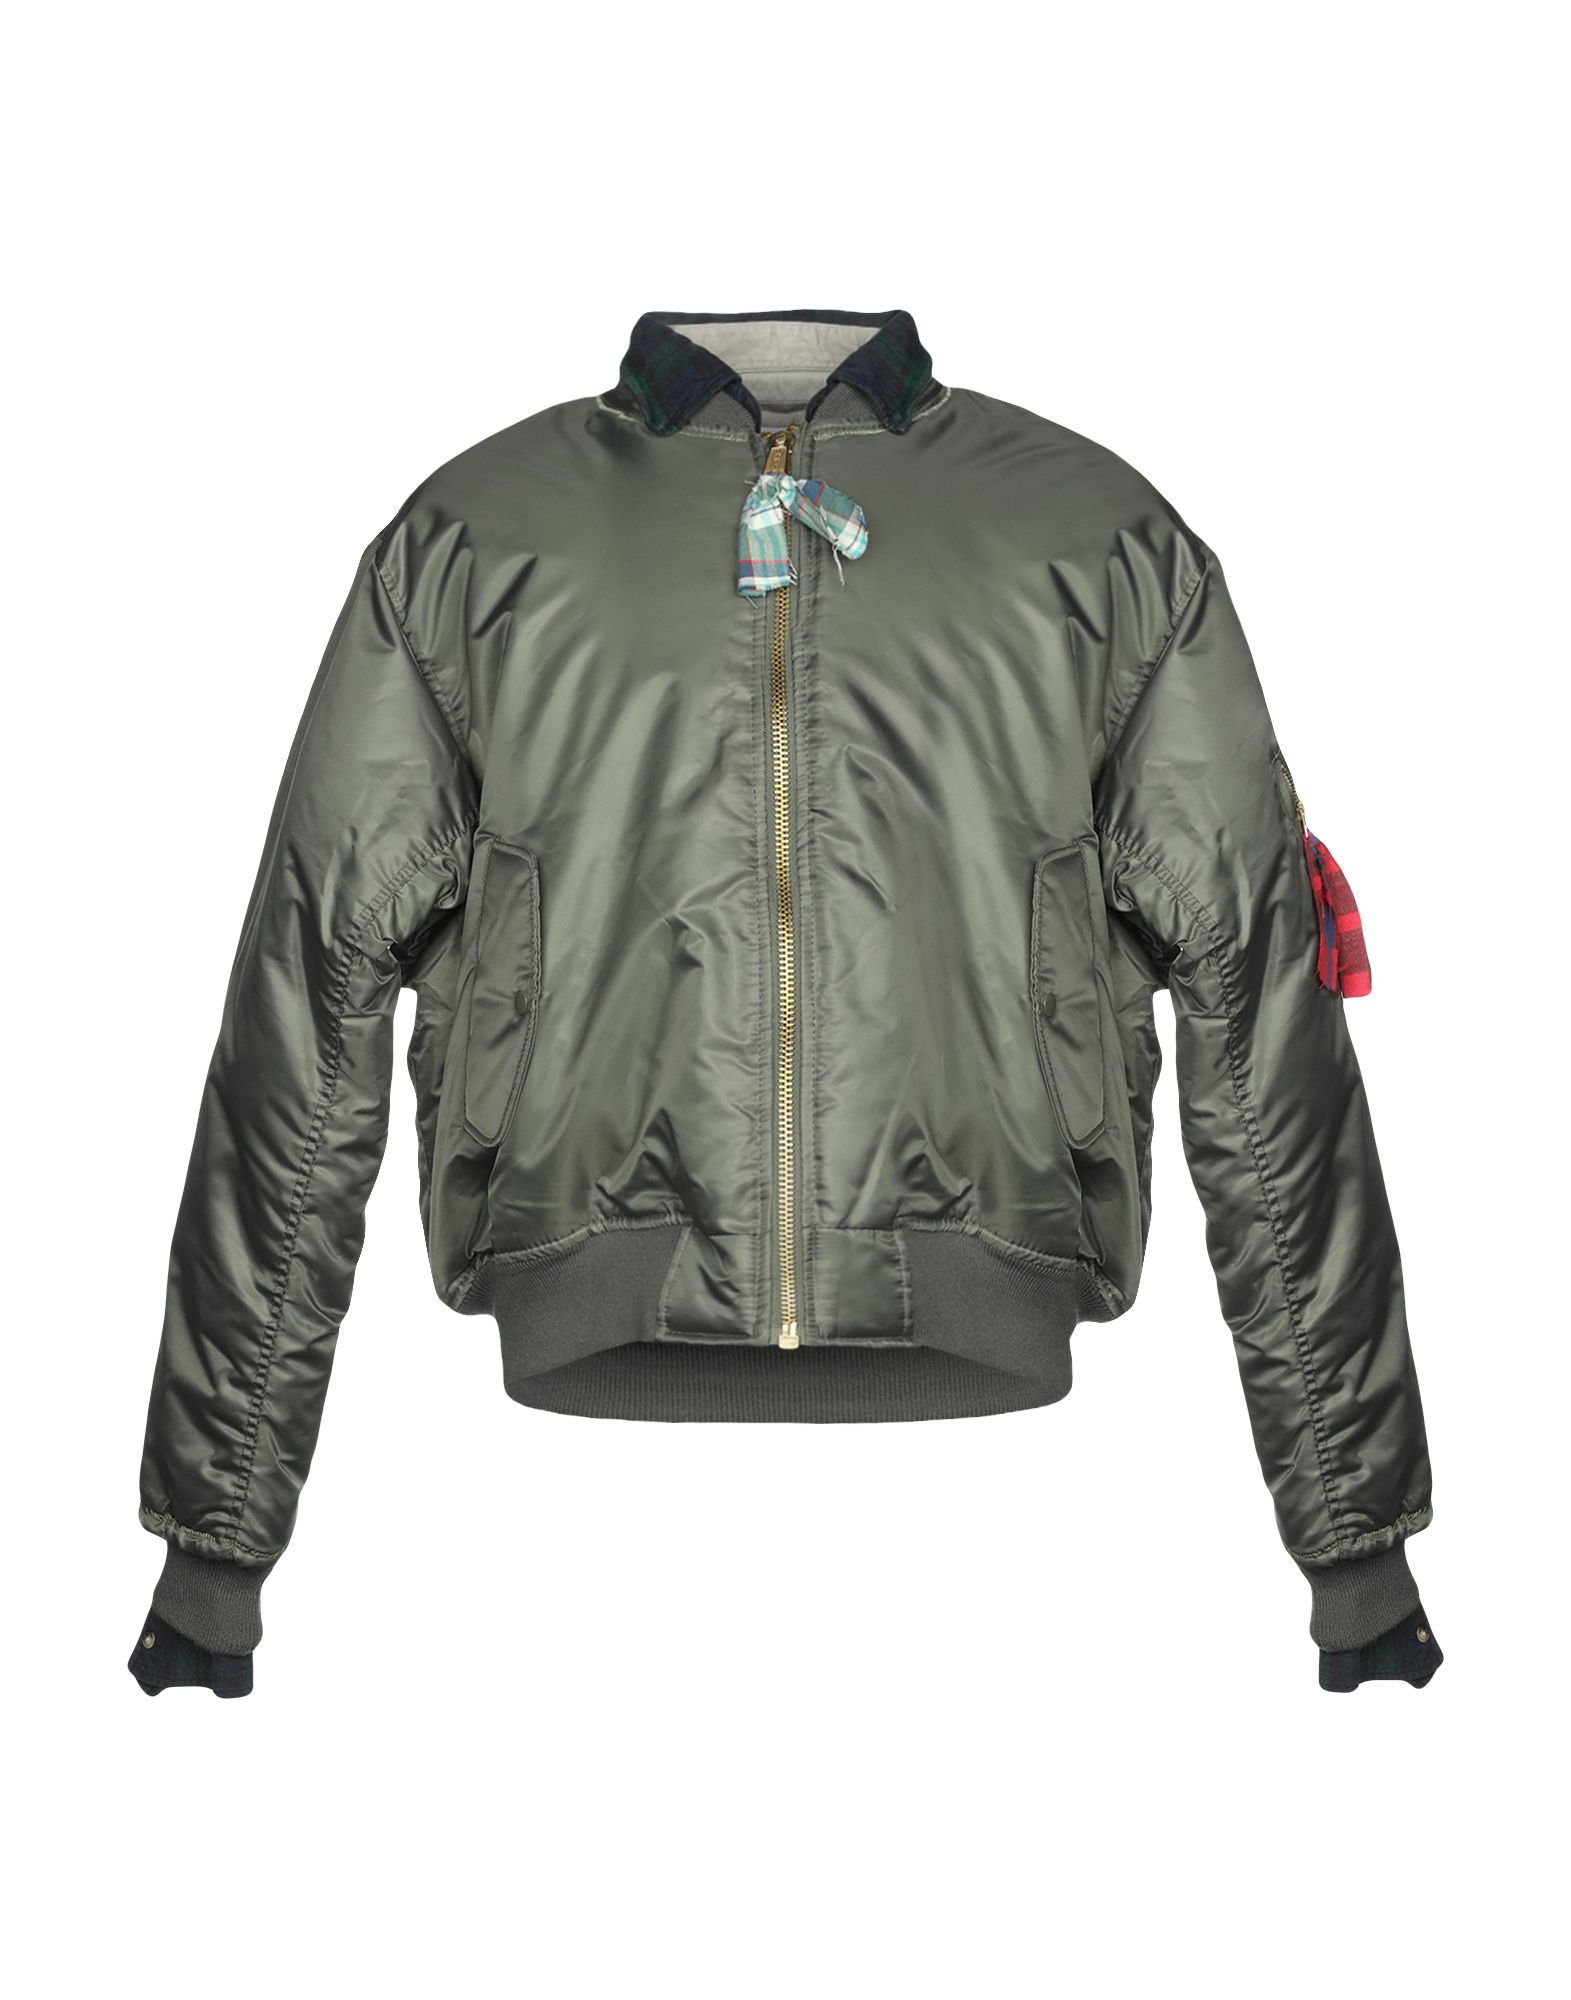 THE INCORPORATED Jackets in Military Green